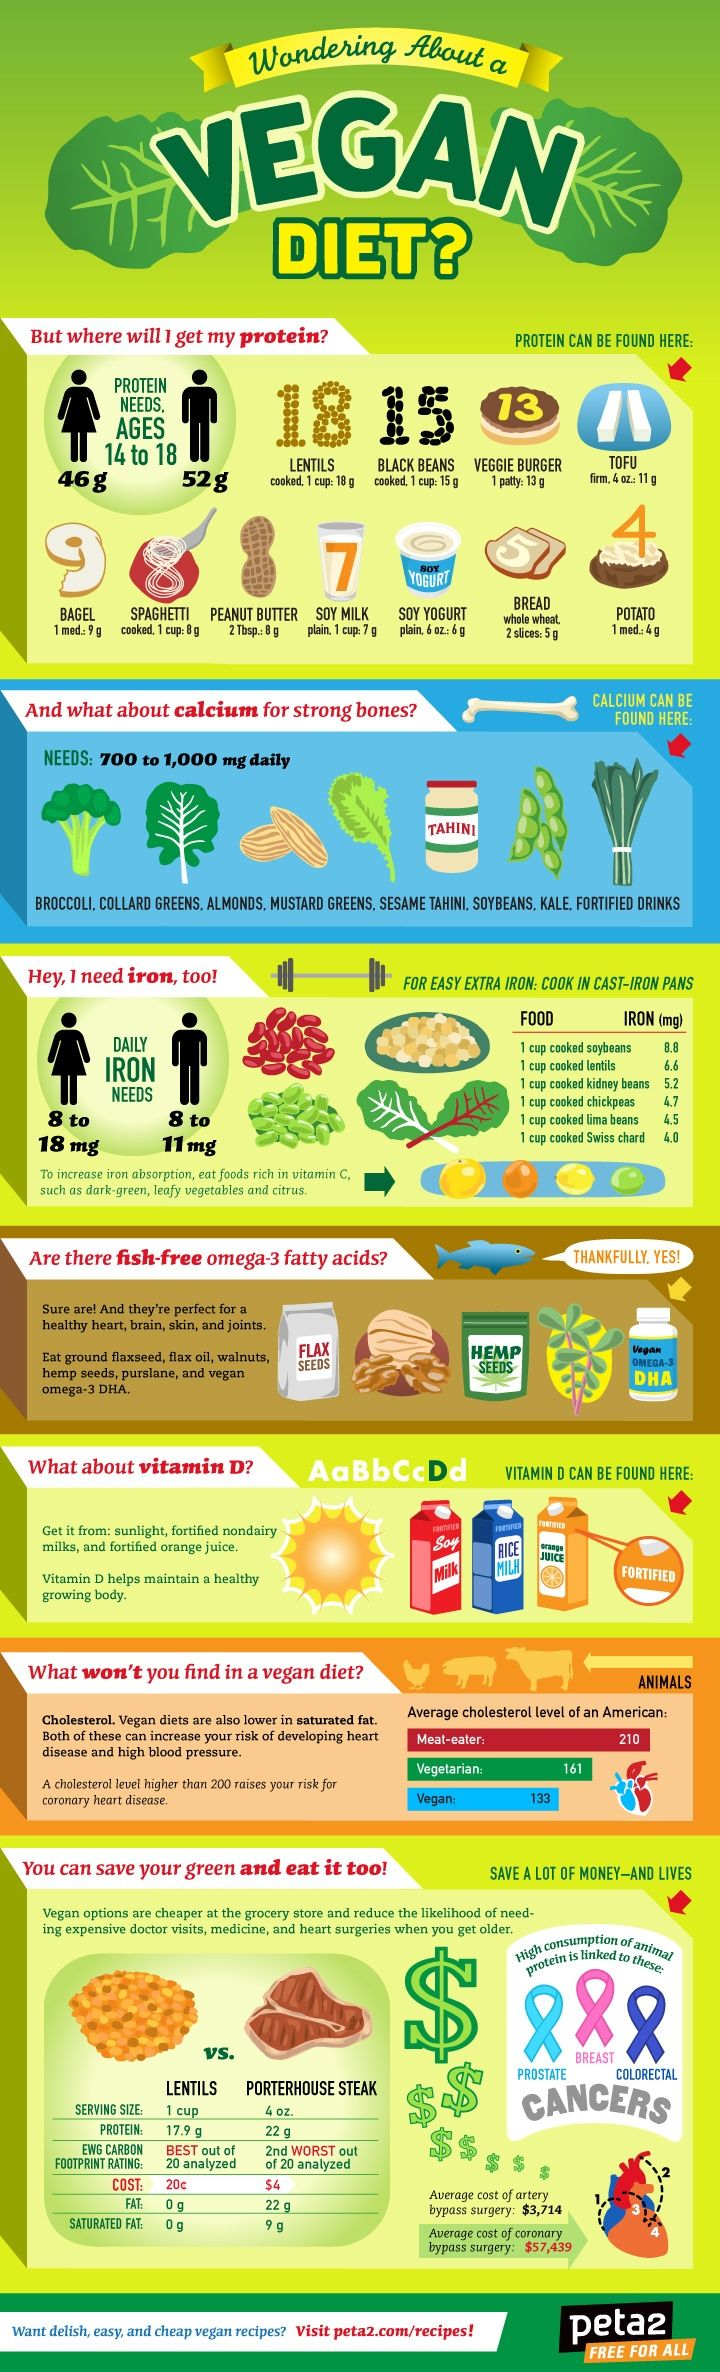 "Infographic: How to Go Vegan ""Curious about how to go vegan? We break it down for you with this simple, hip infographic."" ""Vegan diets need some thoughtful planning so you stay healthy, especially at the beginning when you are just getting started. Know the facts so you can be a good healthy example for anyone else looking to try a vegan lifestyle."" ""Don't forget to take a vitamin B12 supplement!"" and consider grain-free substitutes"